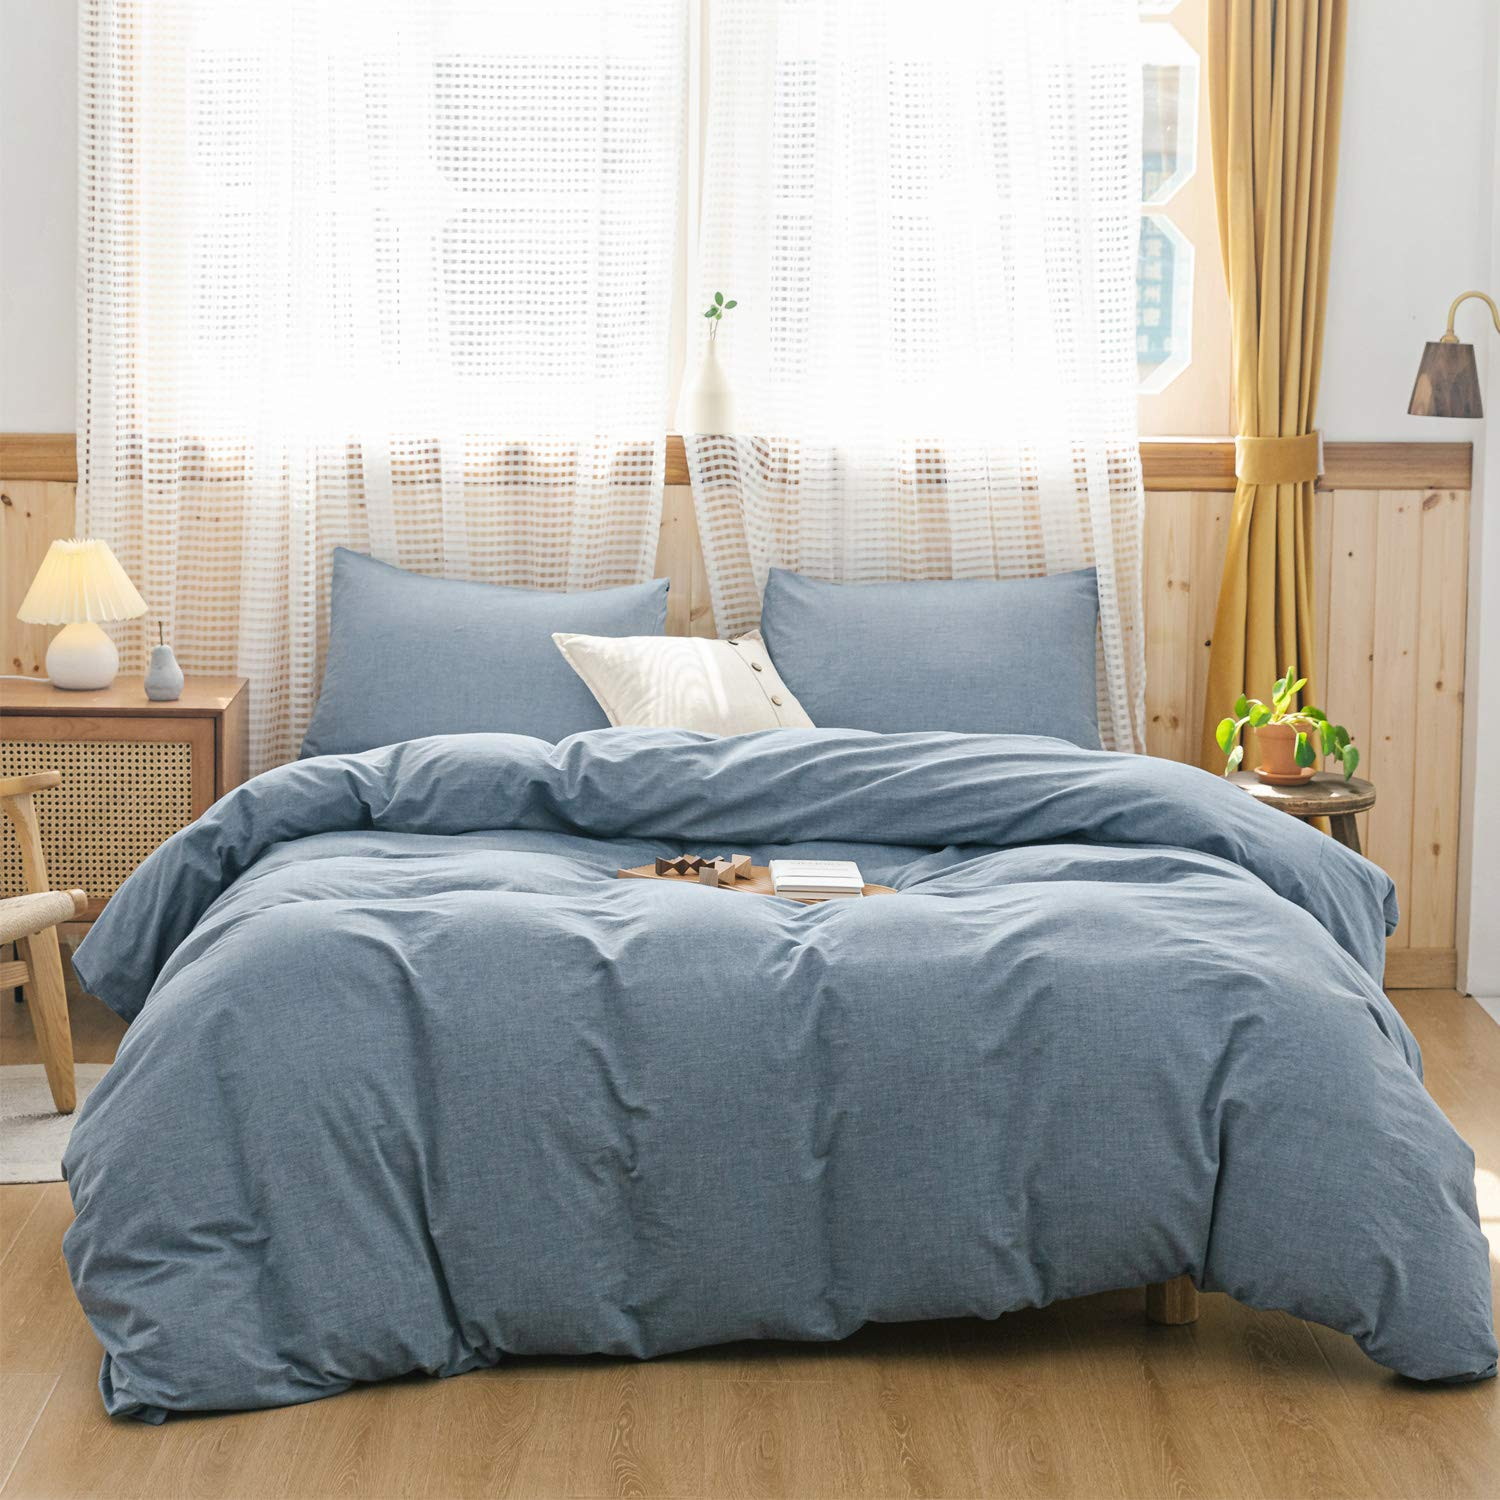 ECOCOTT 3 Pieces Duvet Cover Set 100% Washed Cotton 1 Duvet Cover with Zipper and 2 Pillowcases, Ultra Soft and Easy Care Breathable Cozy Simple Style Bedding Set (Mineral Blue, Queen)